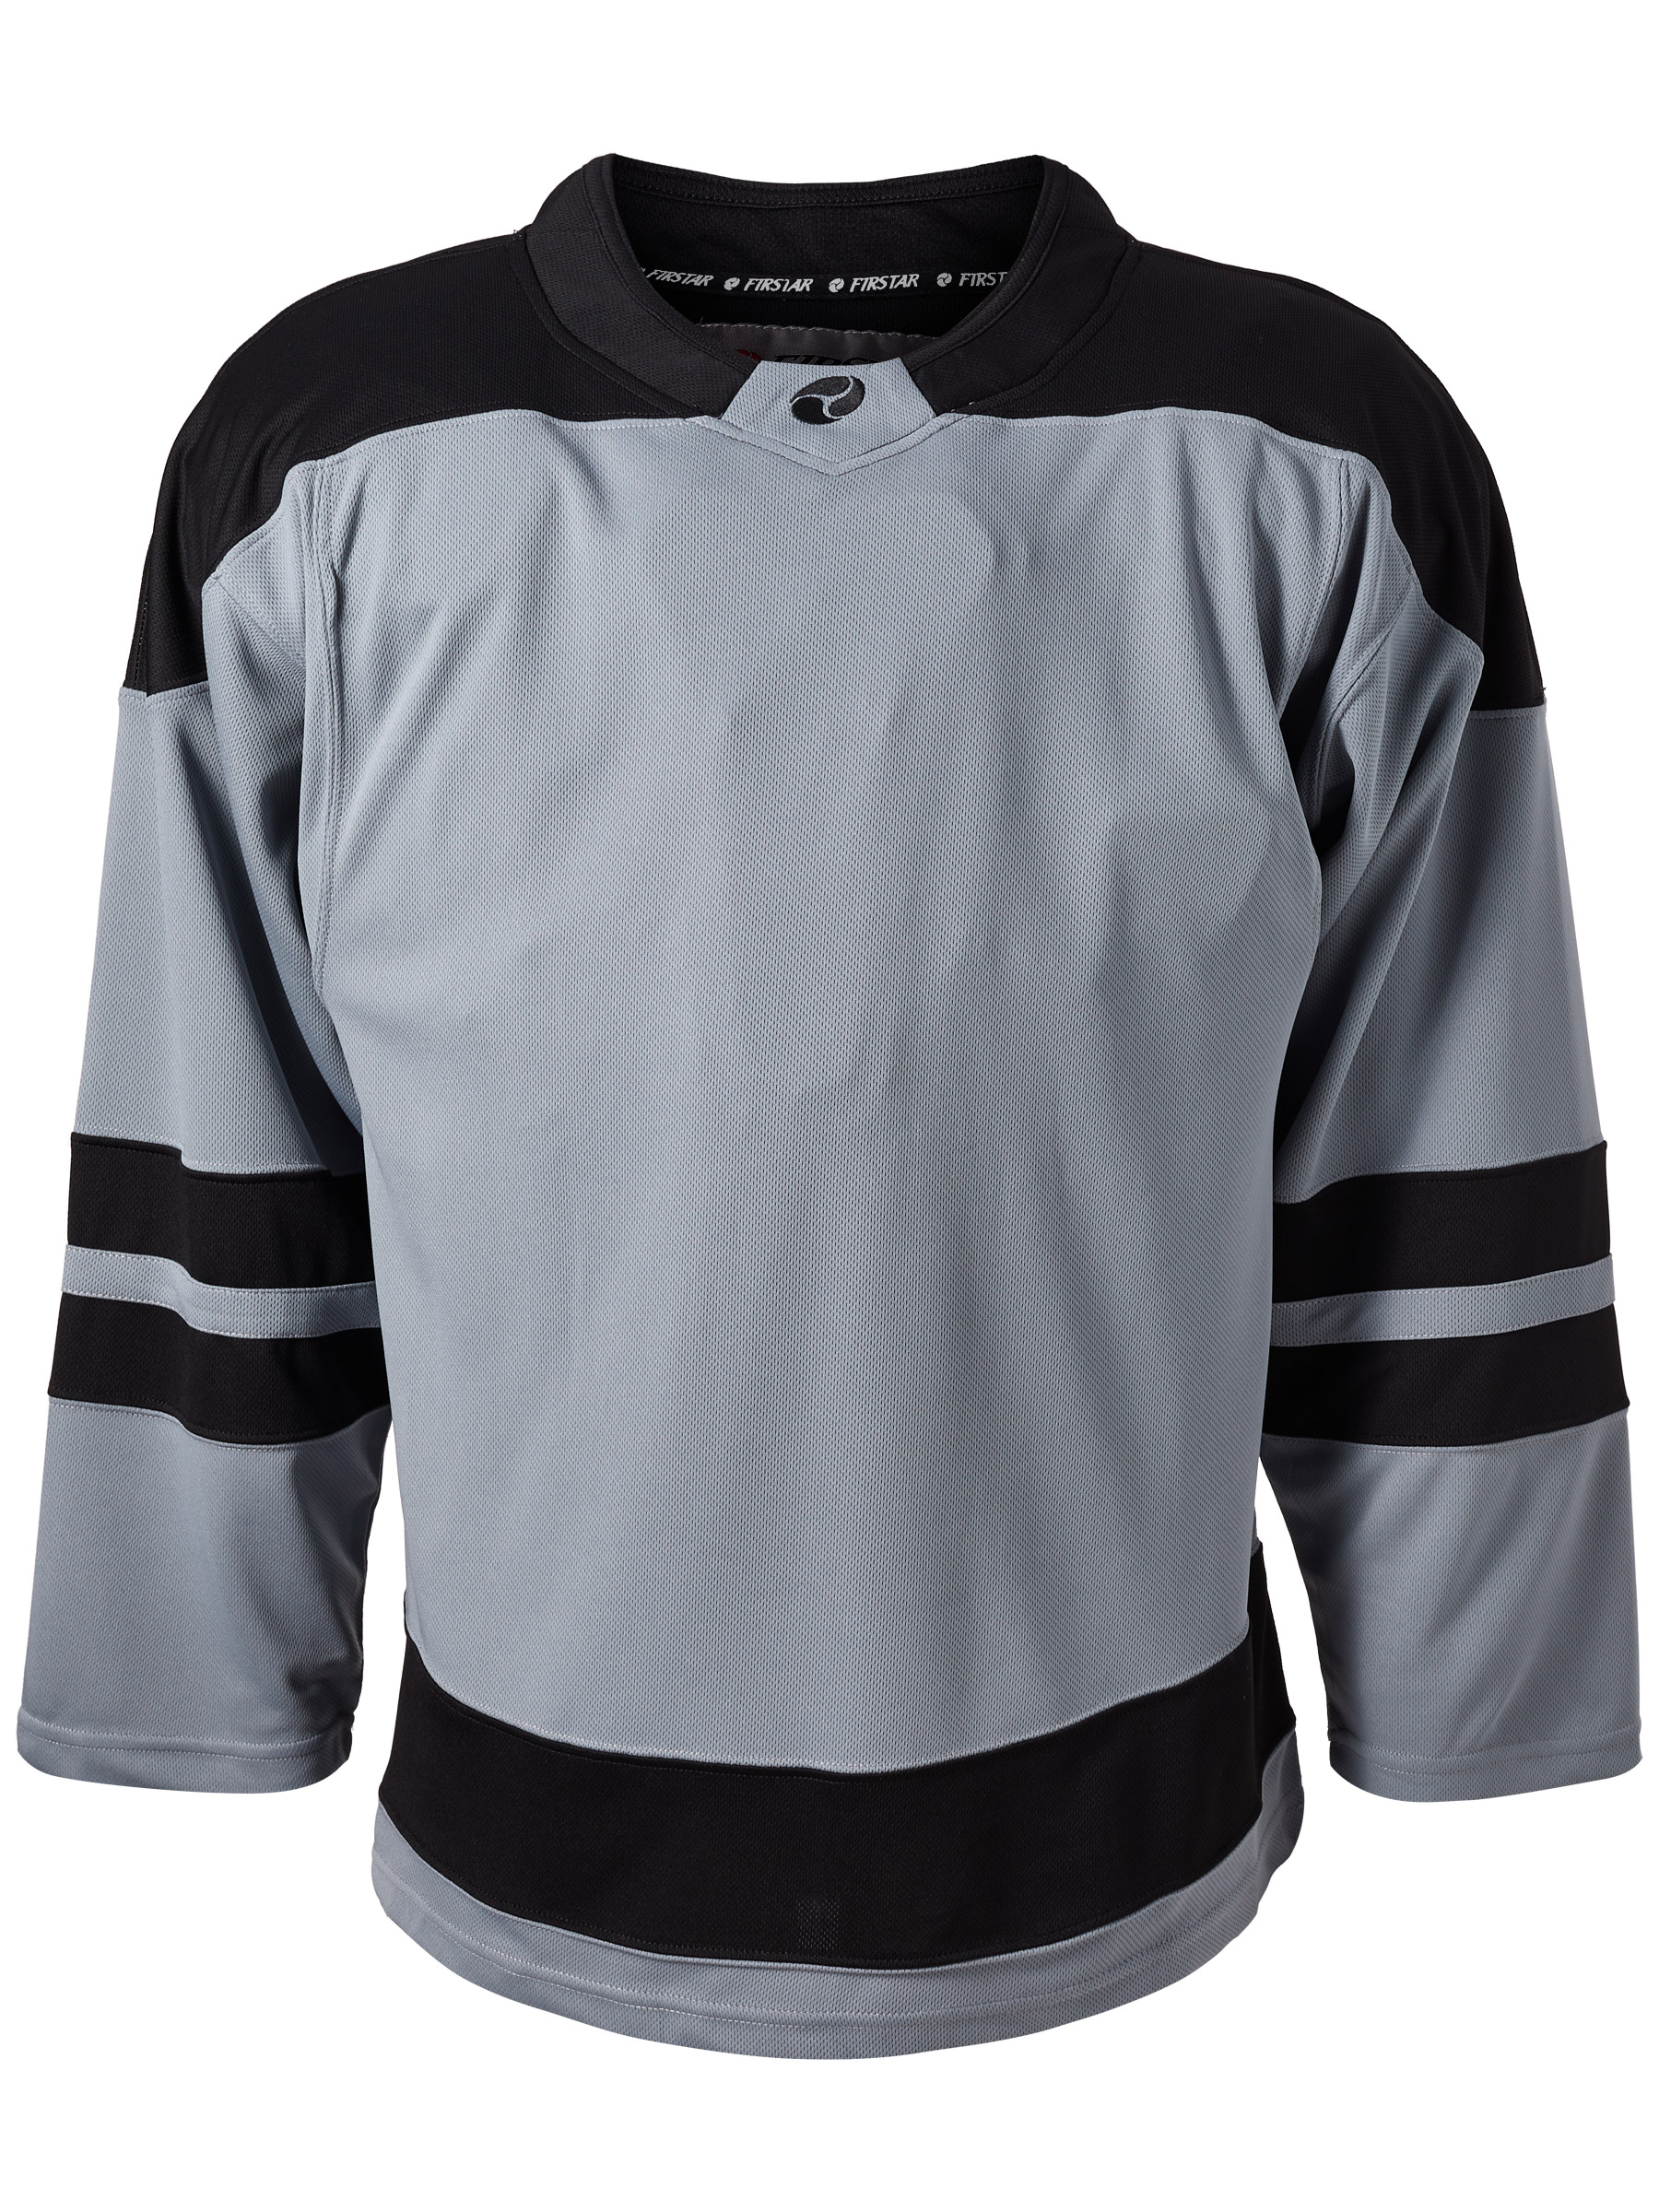 Firstar-Gamewear-Jersey-LosAngeles-Grey.jpeg